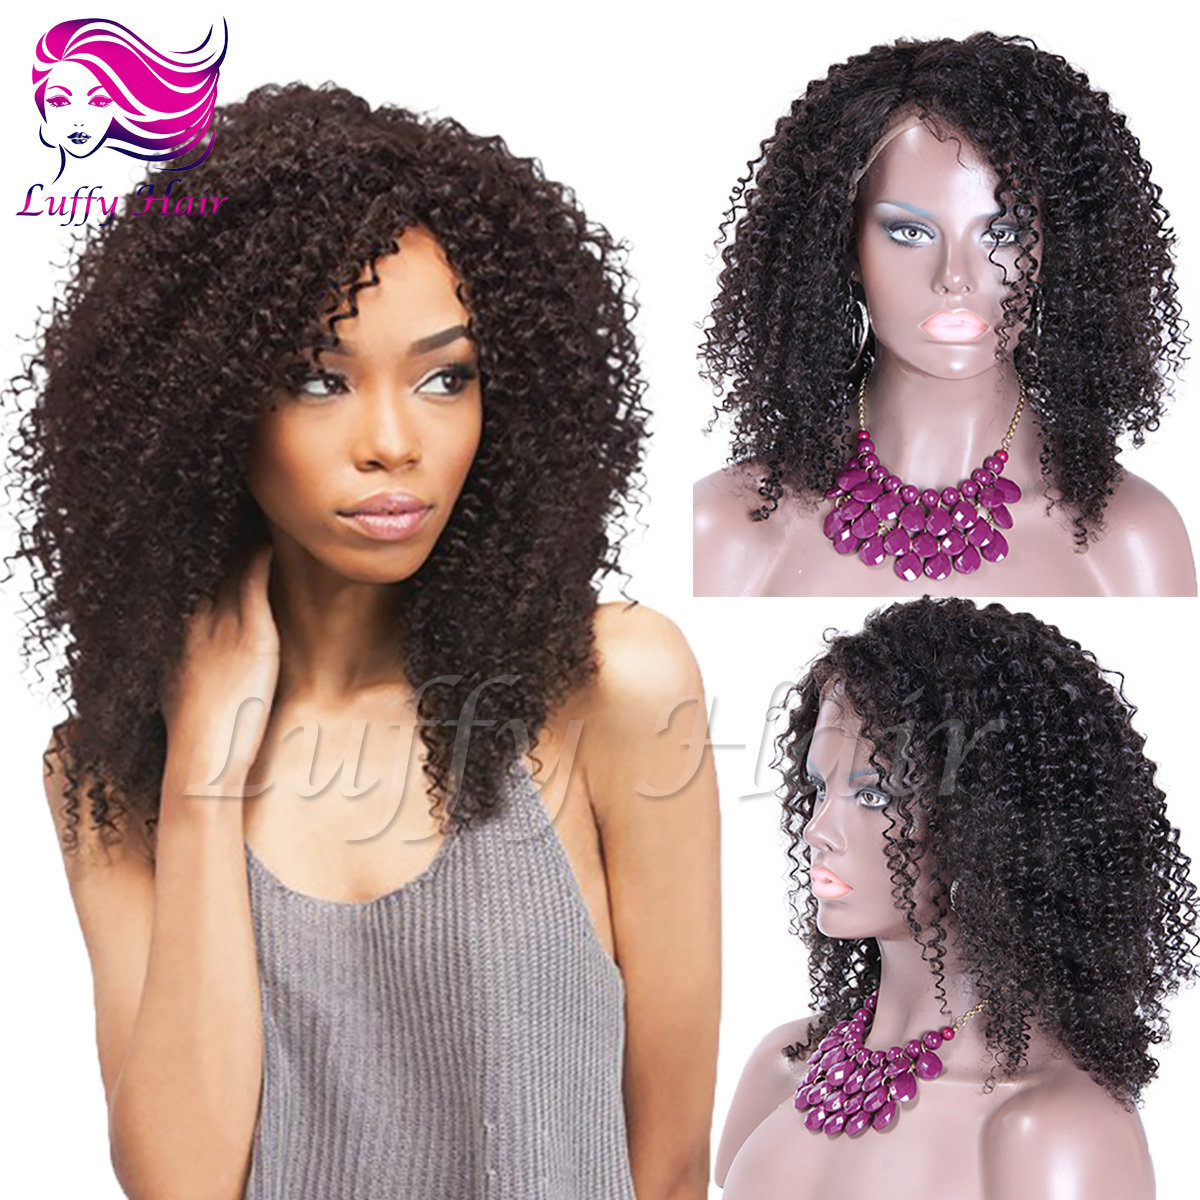 8A Virgin Human Hair Kinky Curly Wig - KWL020